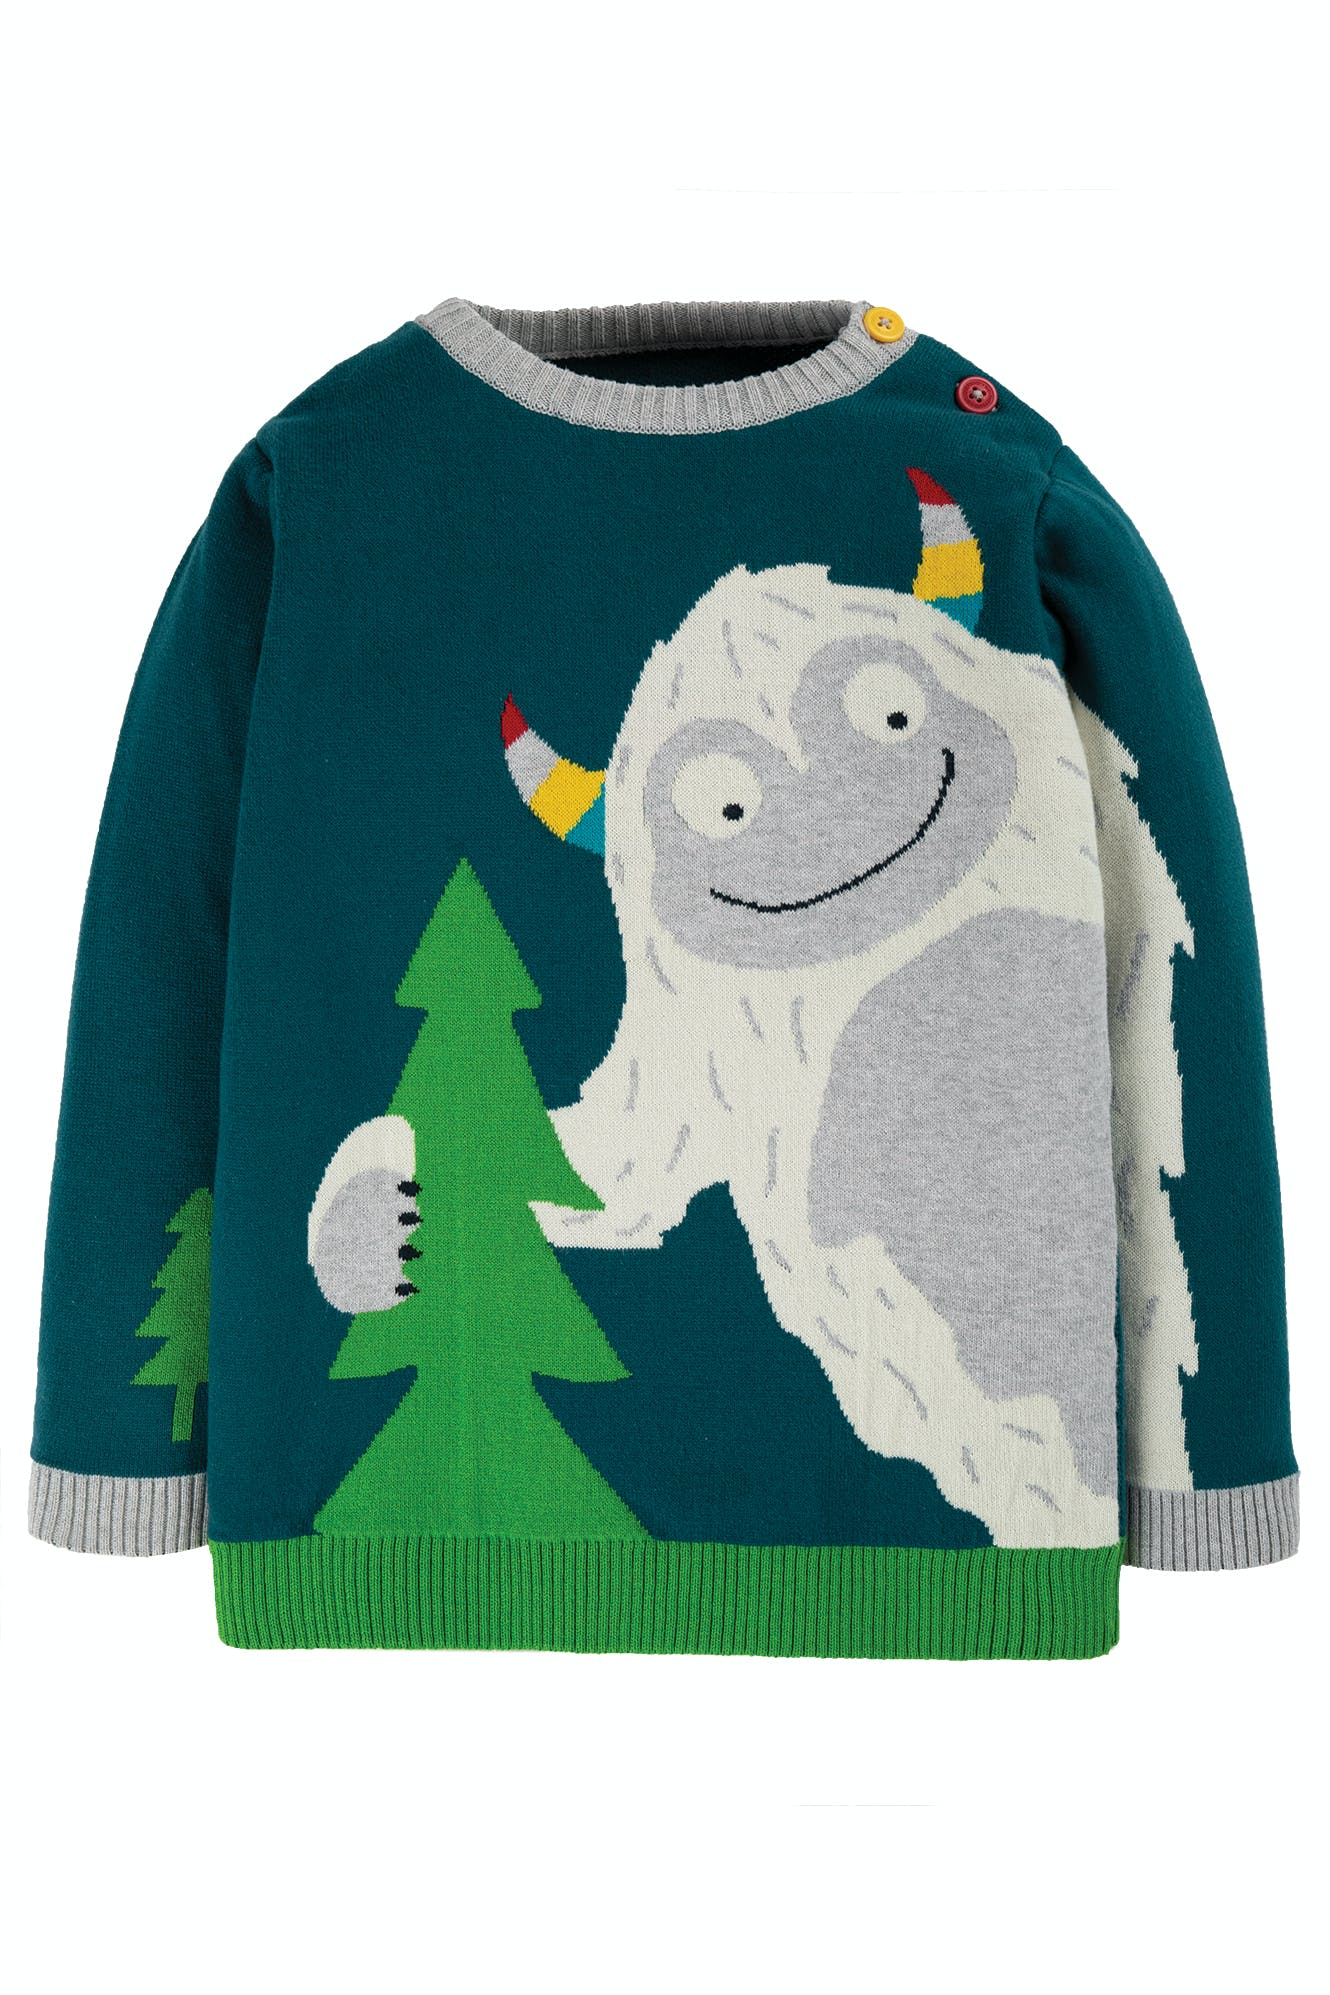 Frugi Elwood Knitted Jumper (Was £36)